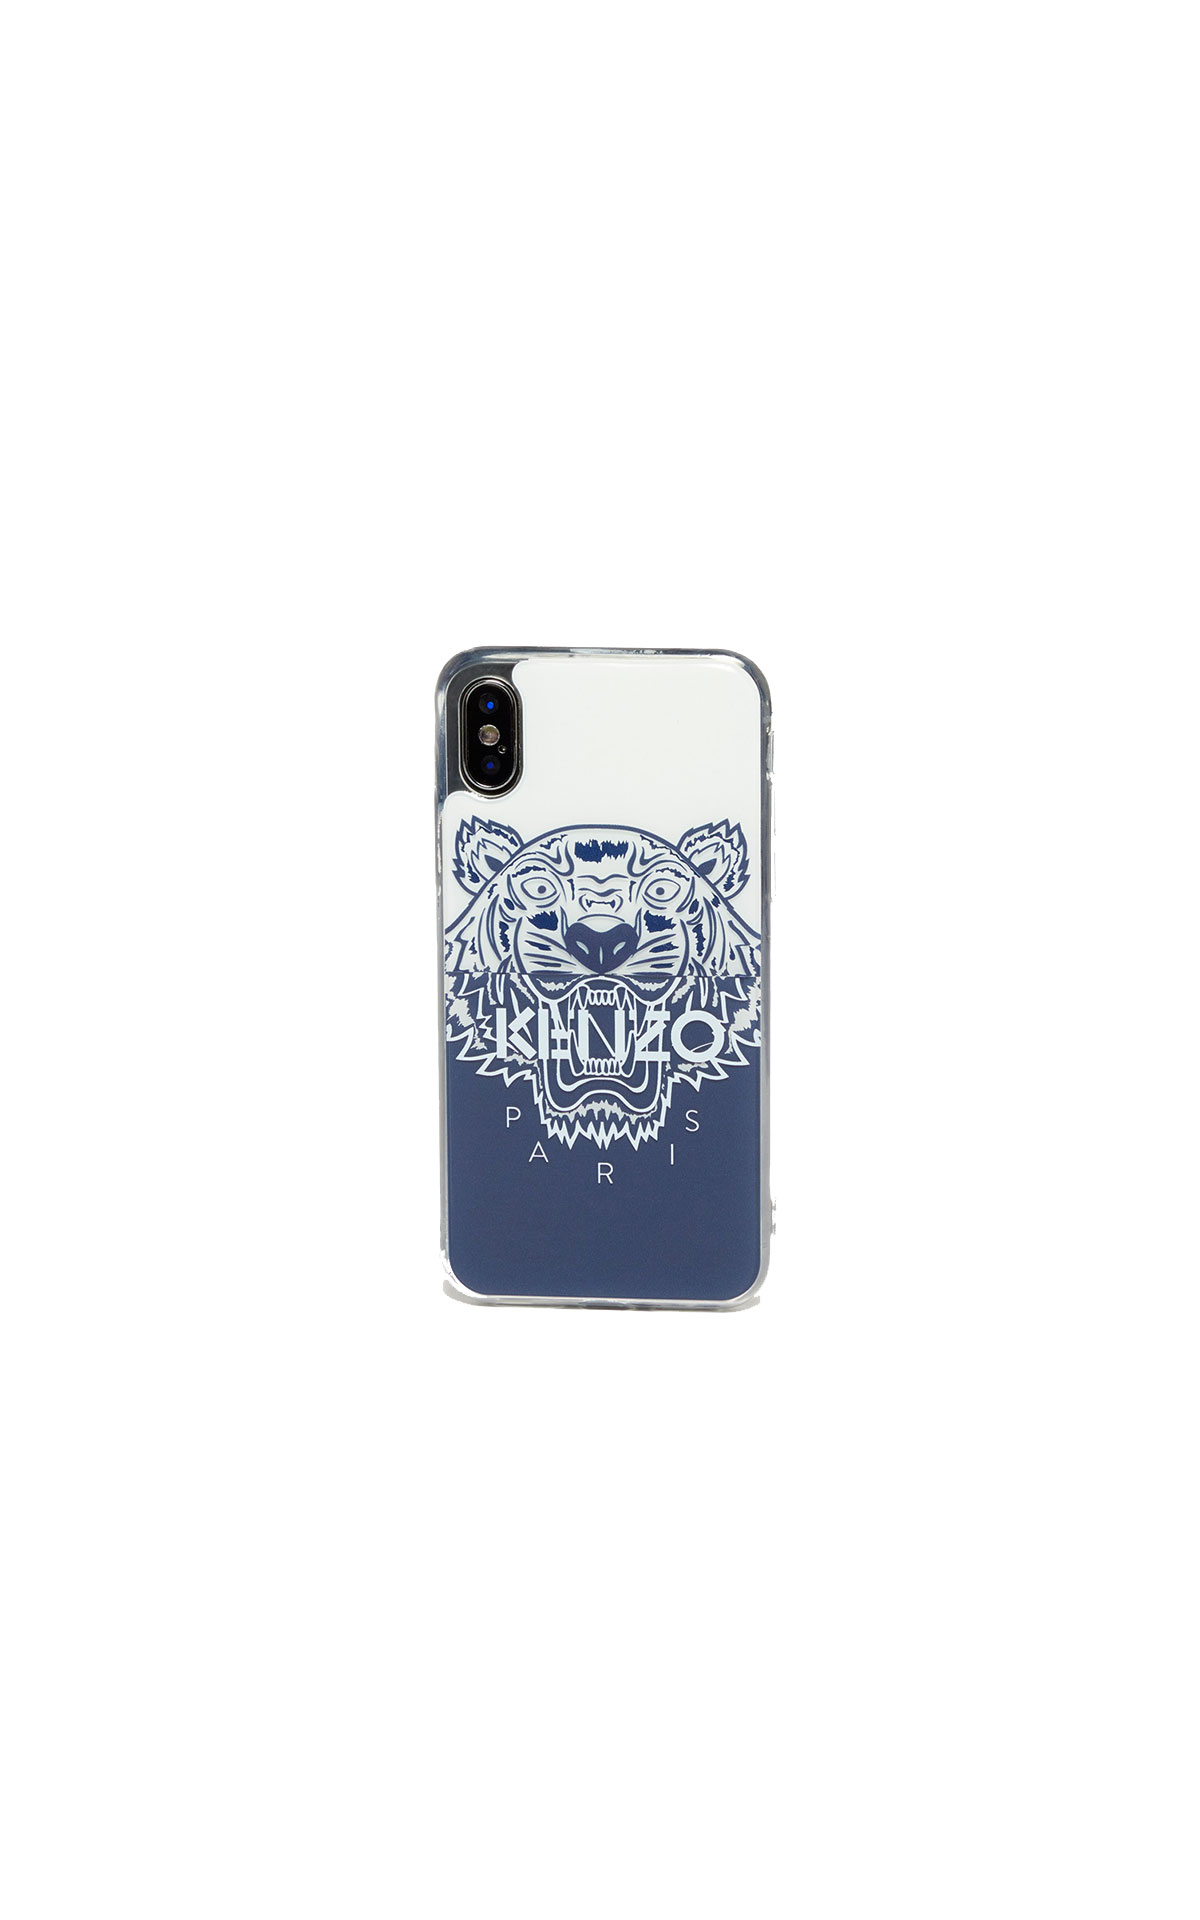 Kenzo Kenzo tiger phone case from Bicester Village